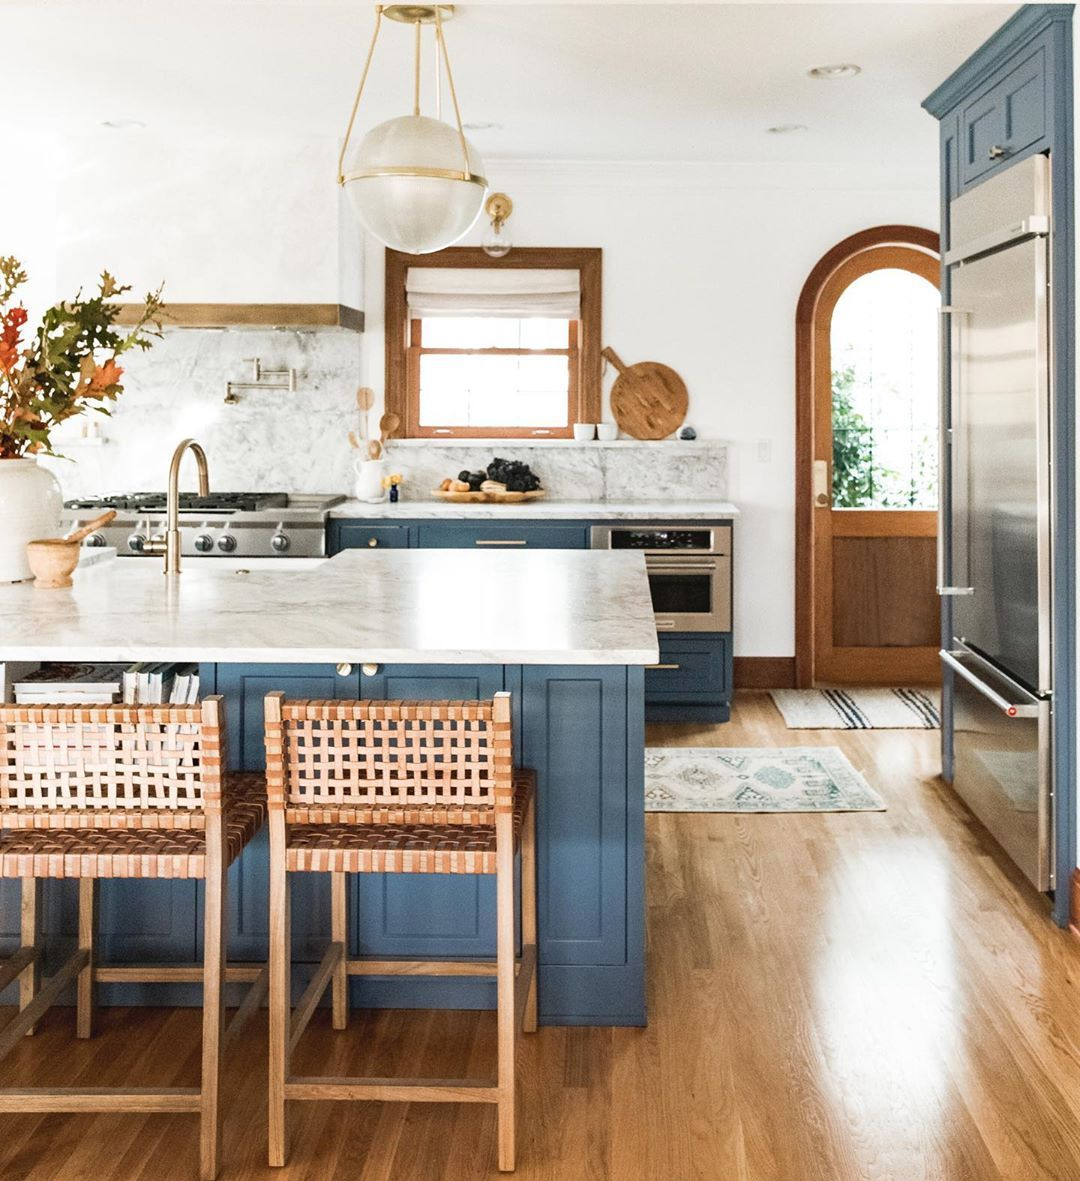 An Interior Designer Shares Her Best Tips for Upgrading Your Kitchen